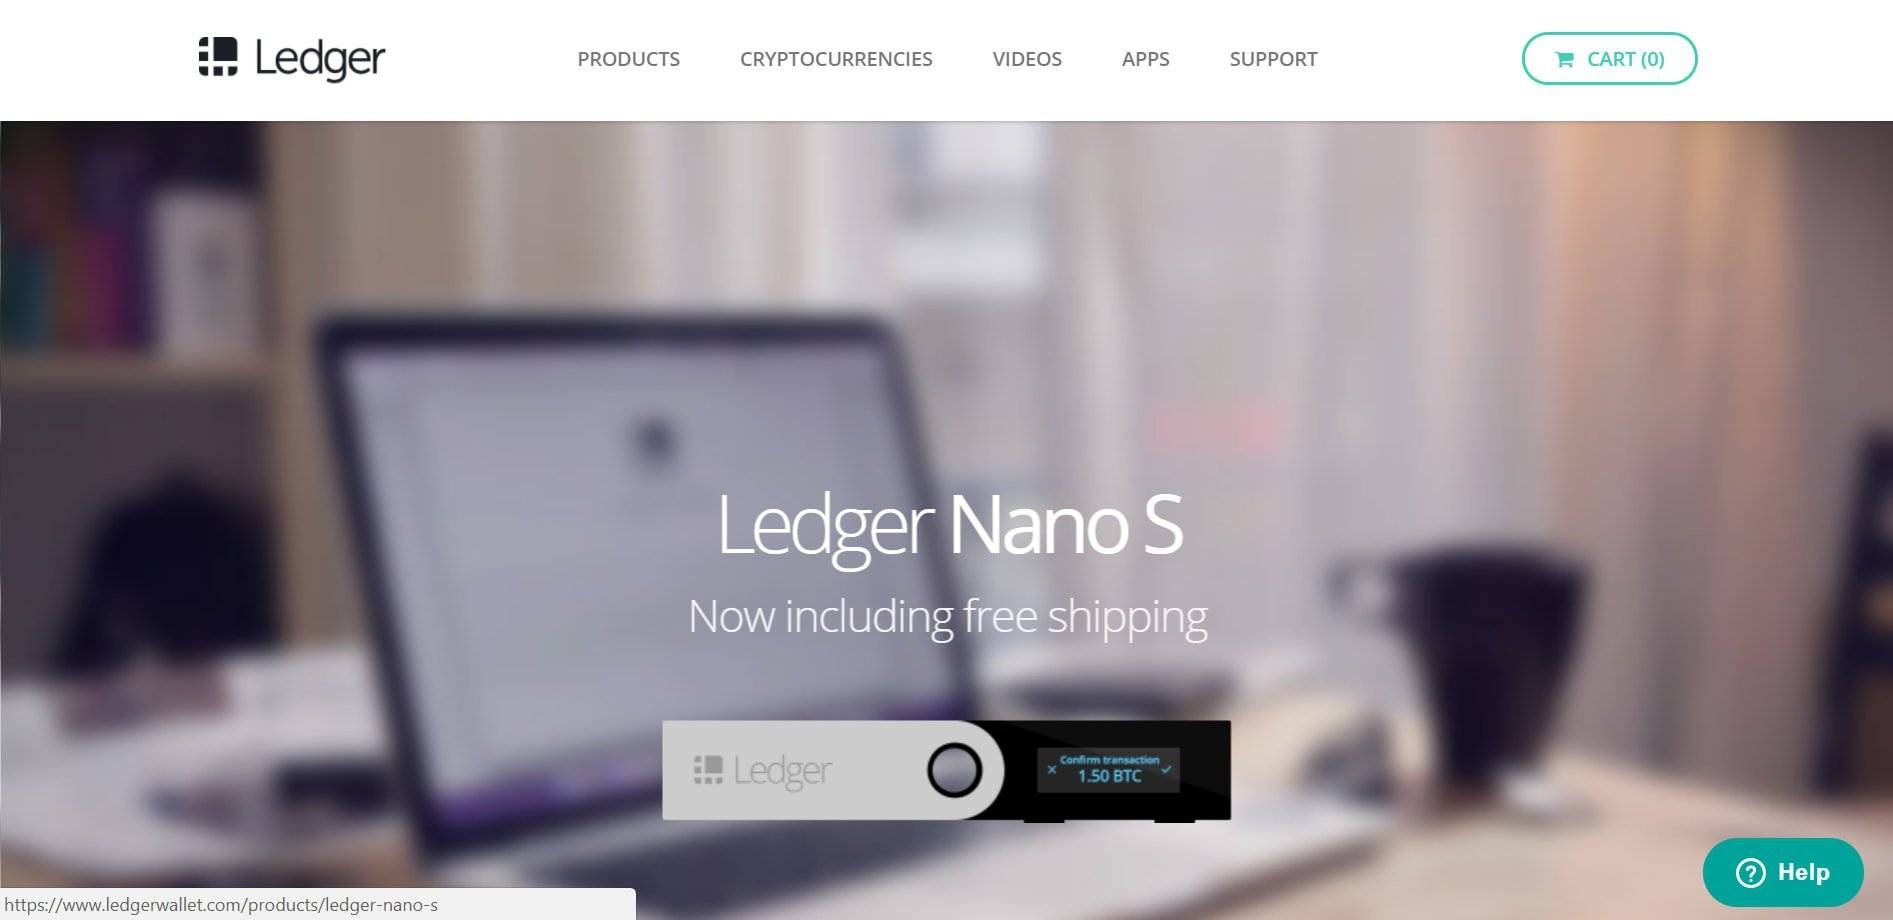 Best Bitcoin wallet: Ledger Nano S front page.